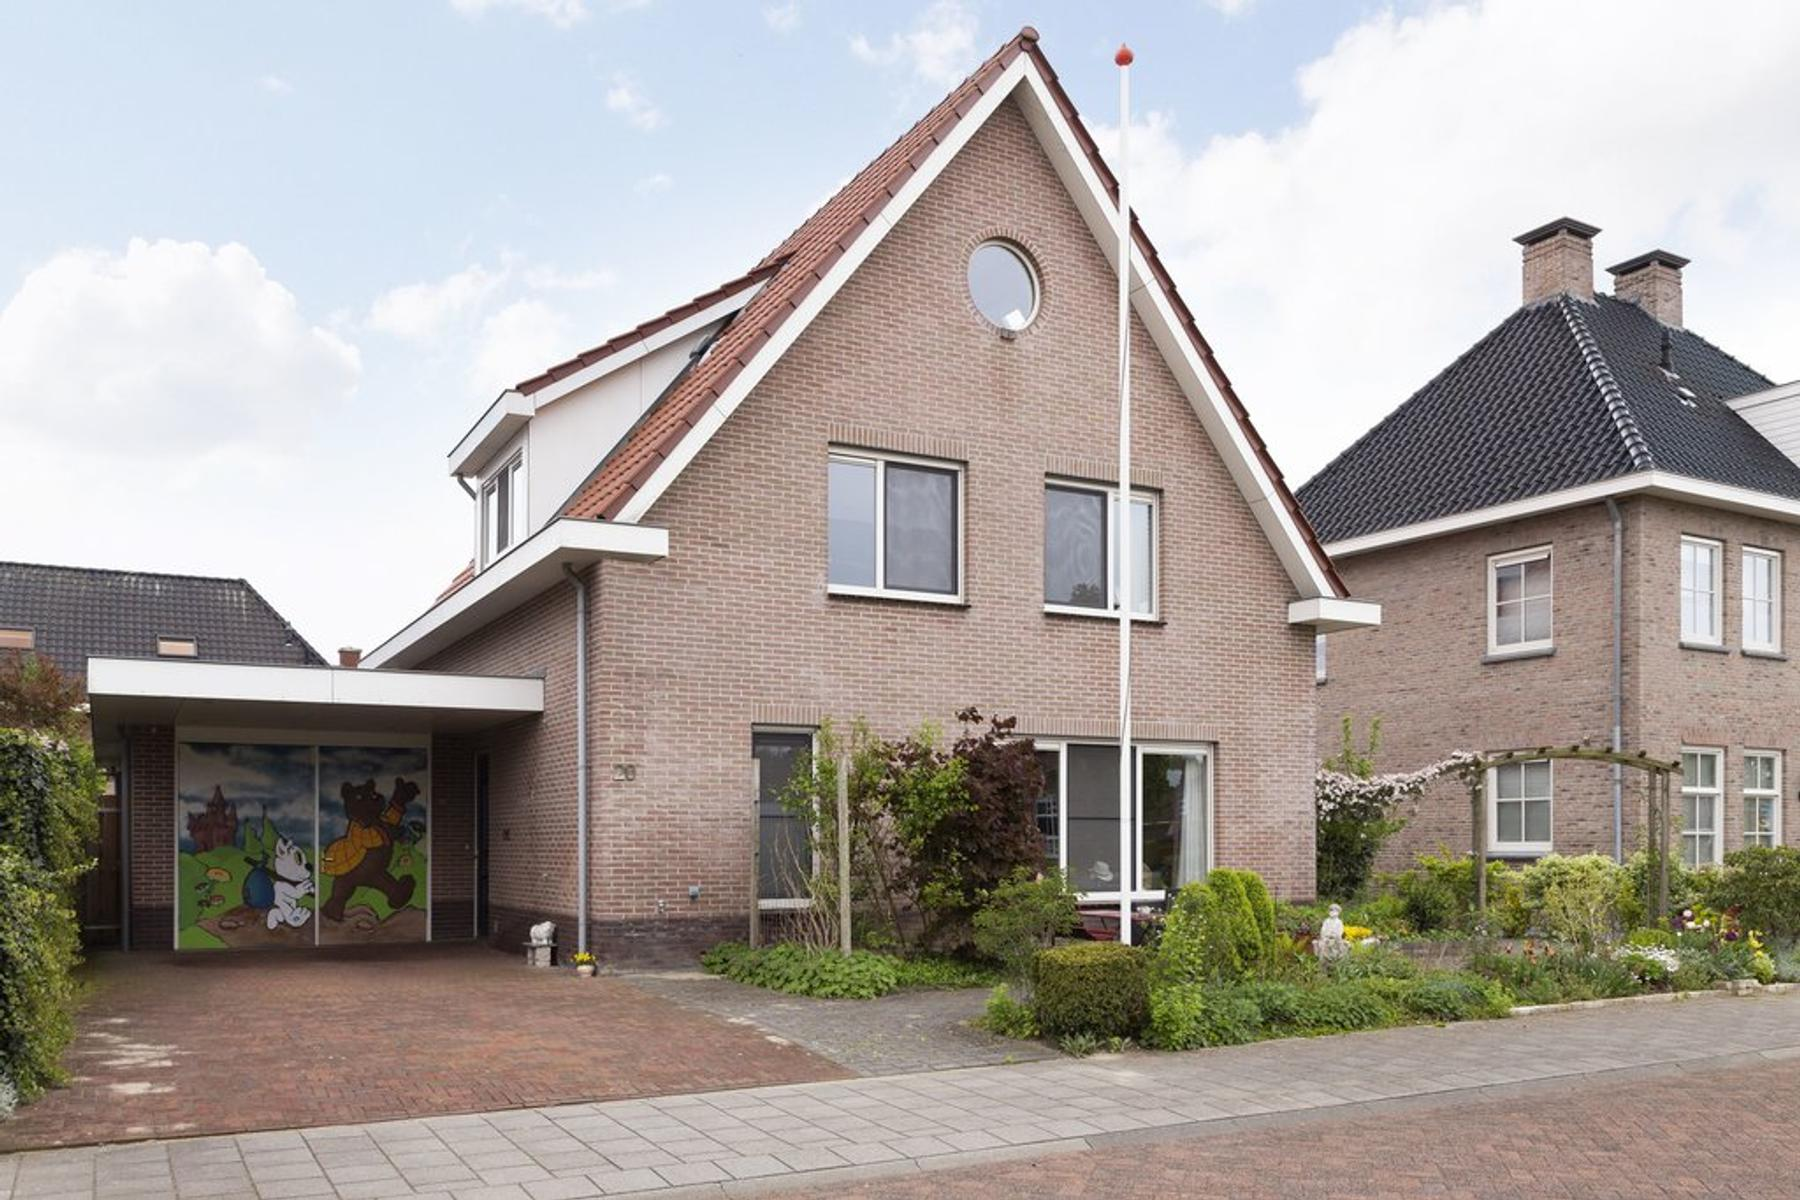 Kwekerije 20 in Kampen 8266 KH